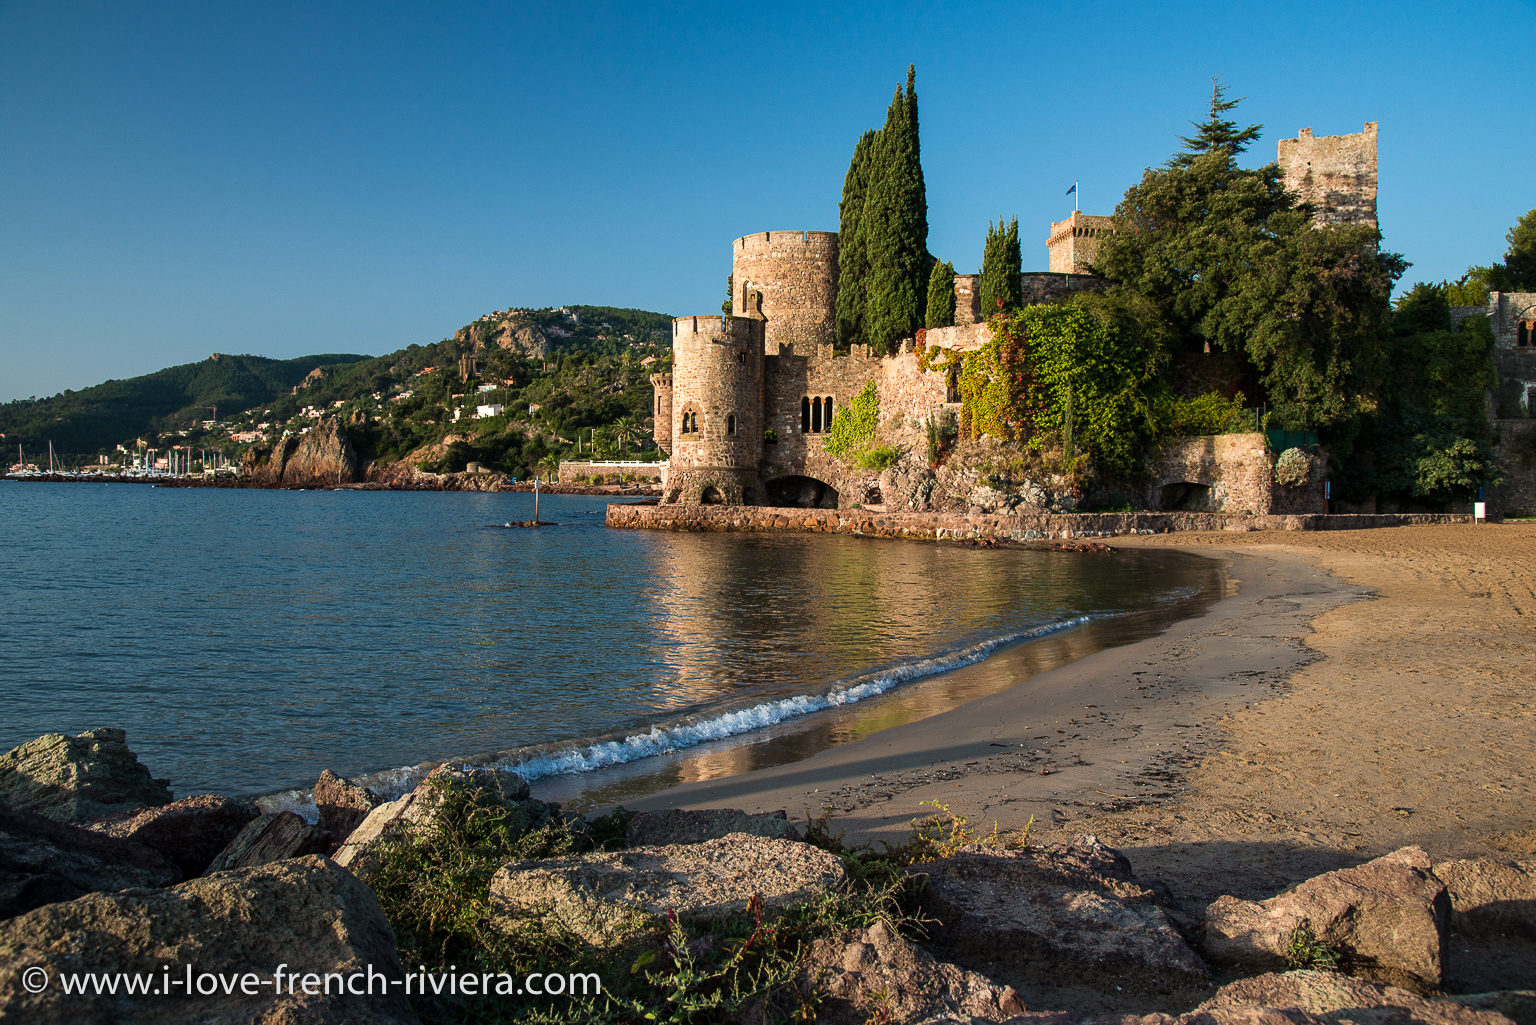 The beach and the famous medieval castle of La Napoule are just in front of our apartment. Picture taken in the morning at 08:30.